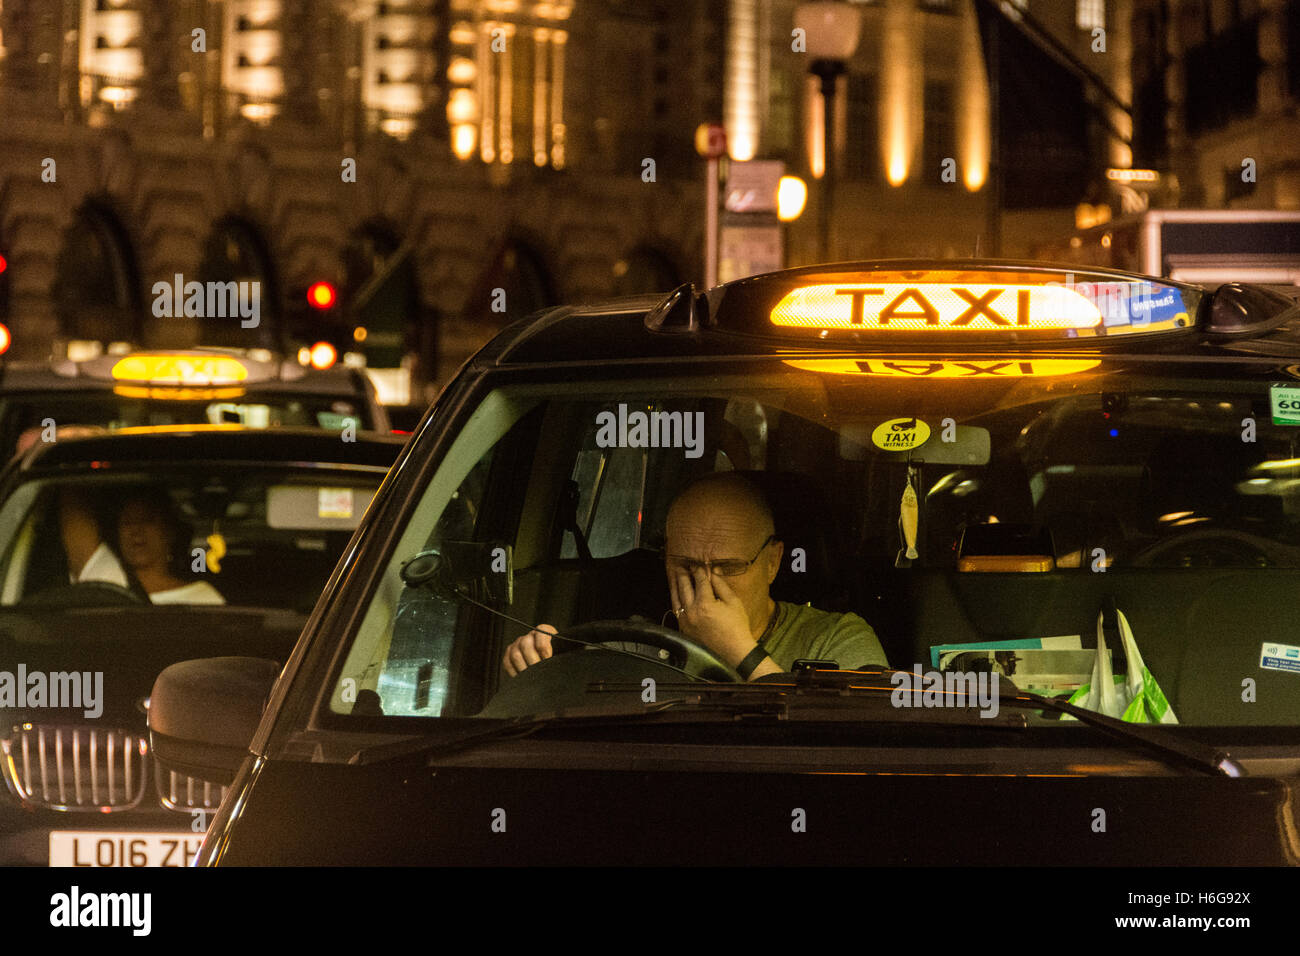 Nighttime fatigue shows on the face of a London taxi driver in the West End, London, UK Stock Photo